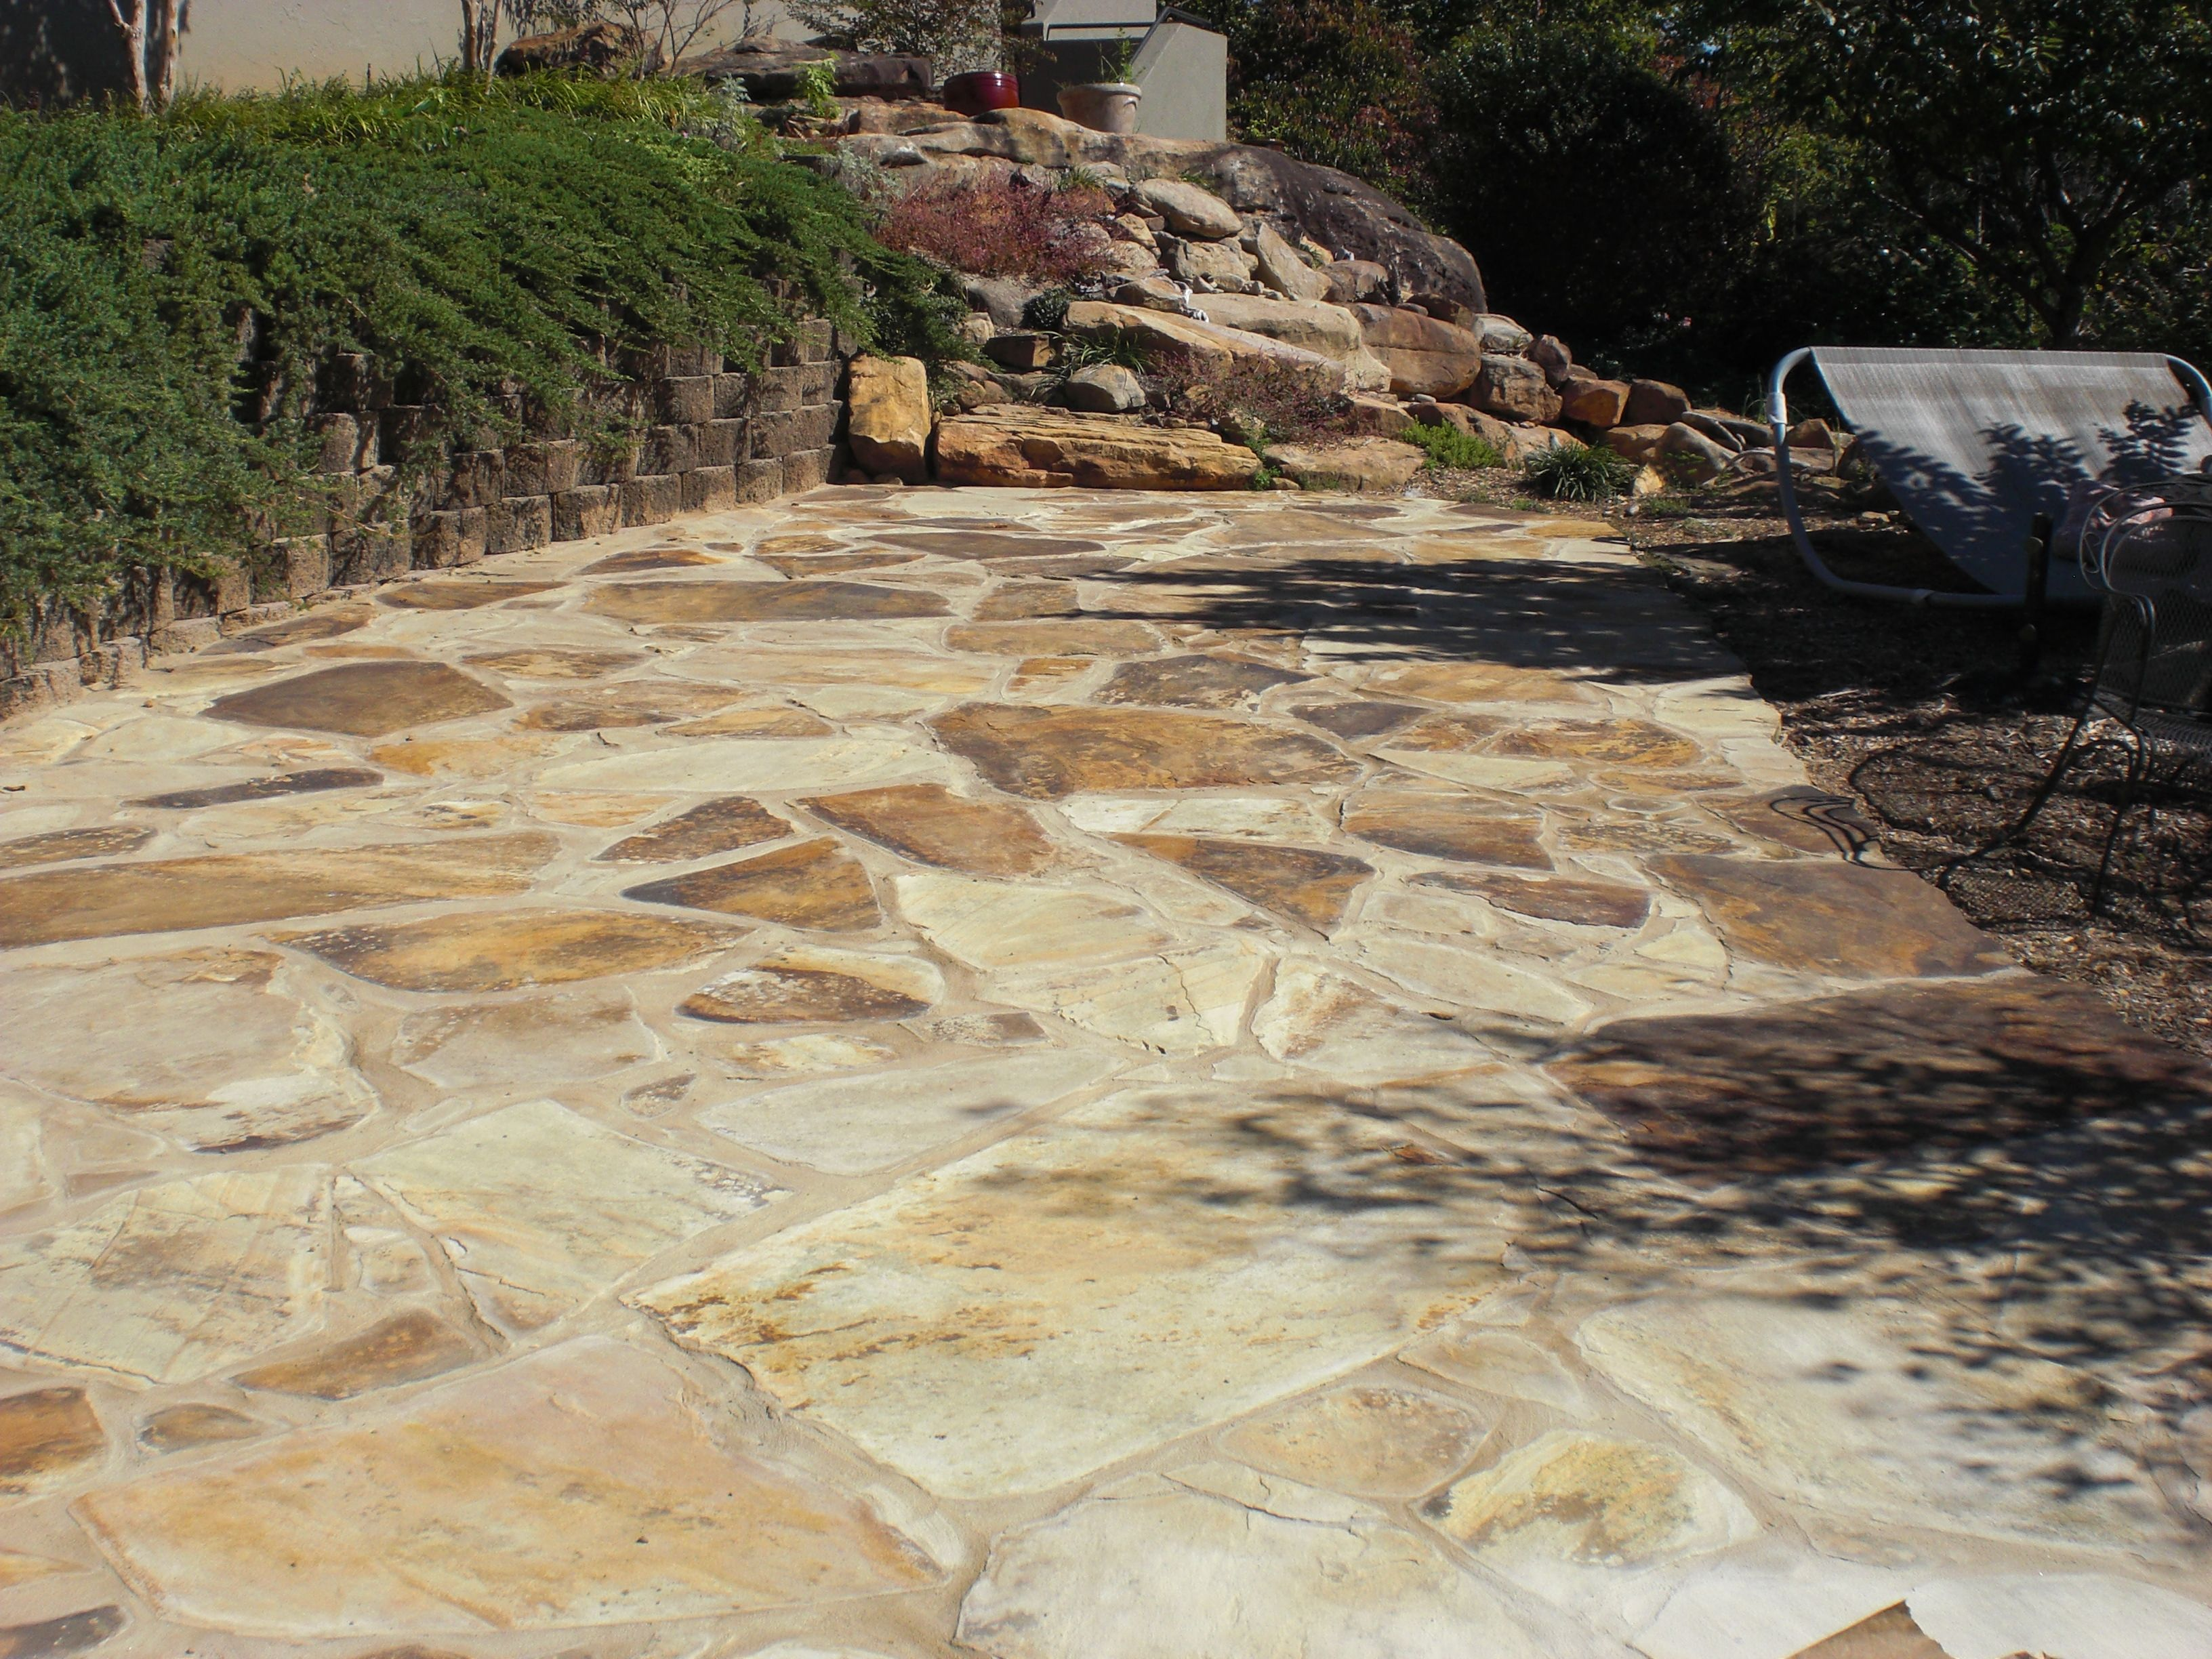 Repairs To The Mortar On This Flagstone Patio Made It Look Like New No Show Waterproofing System Was Used To Seal The Flags Patio Flagstone Patio Pool Decks